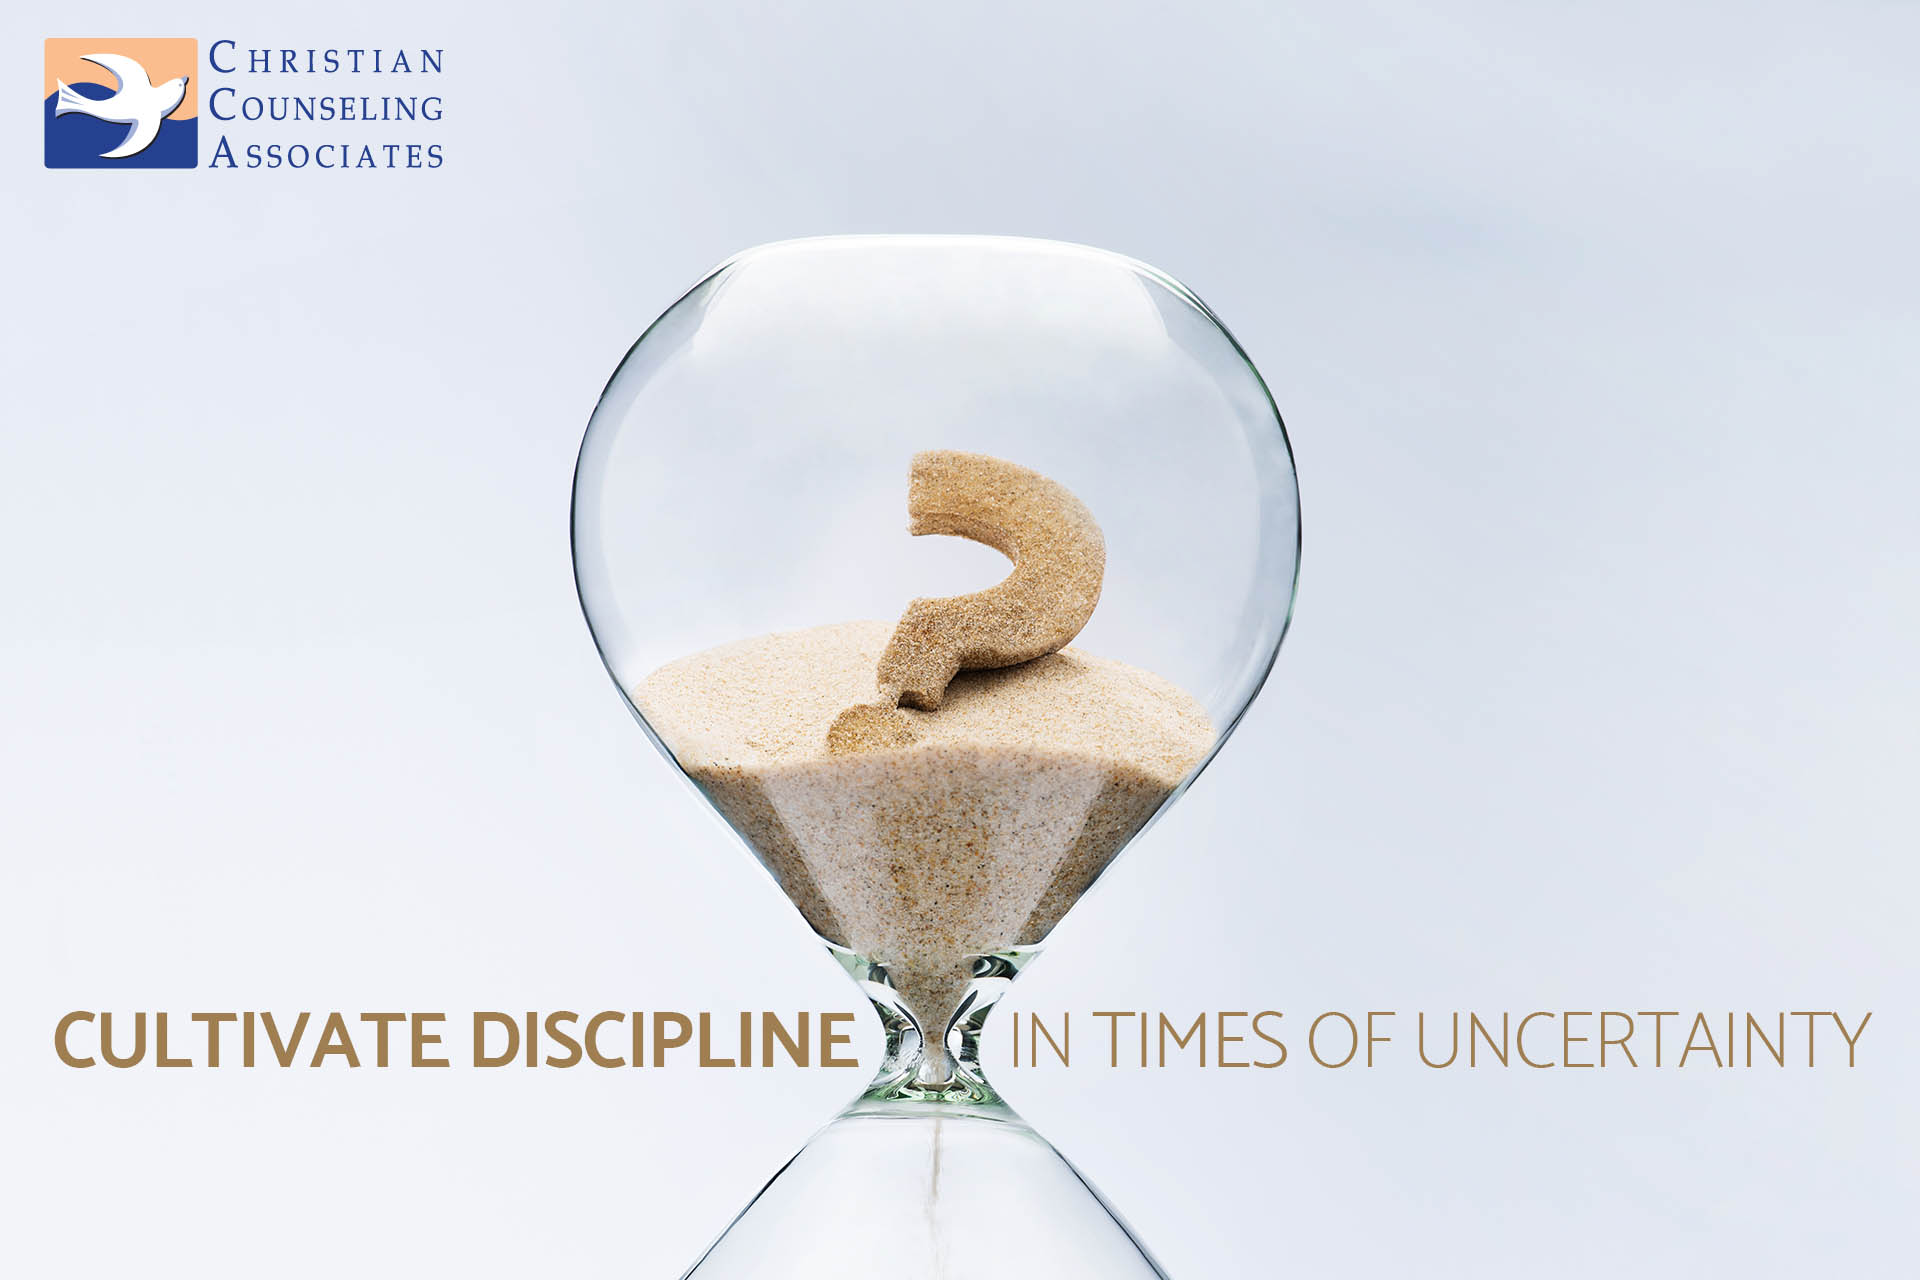 Cultivate Discipline in Times of Uncertainty